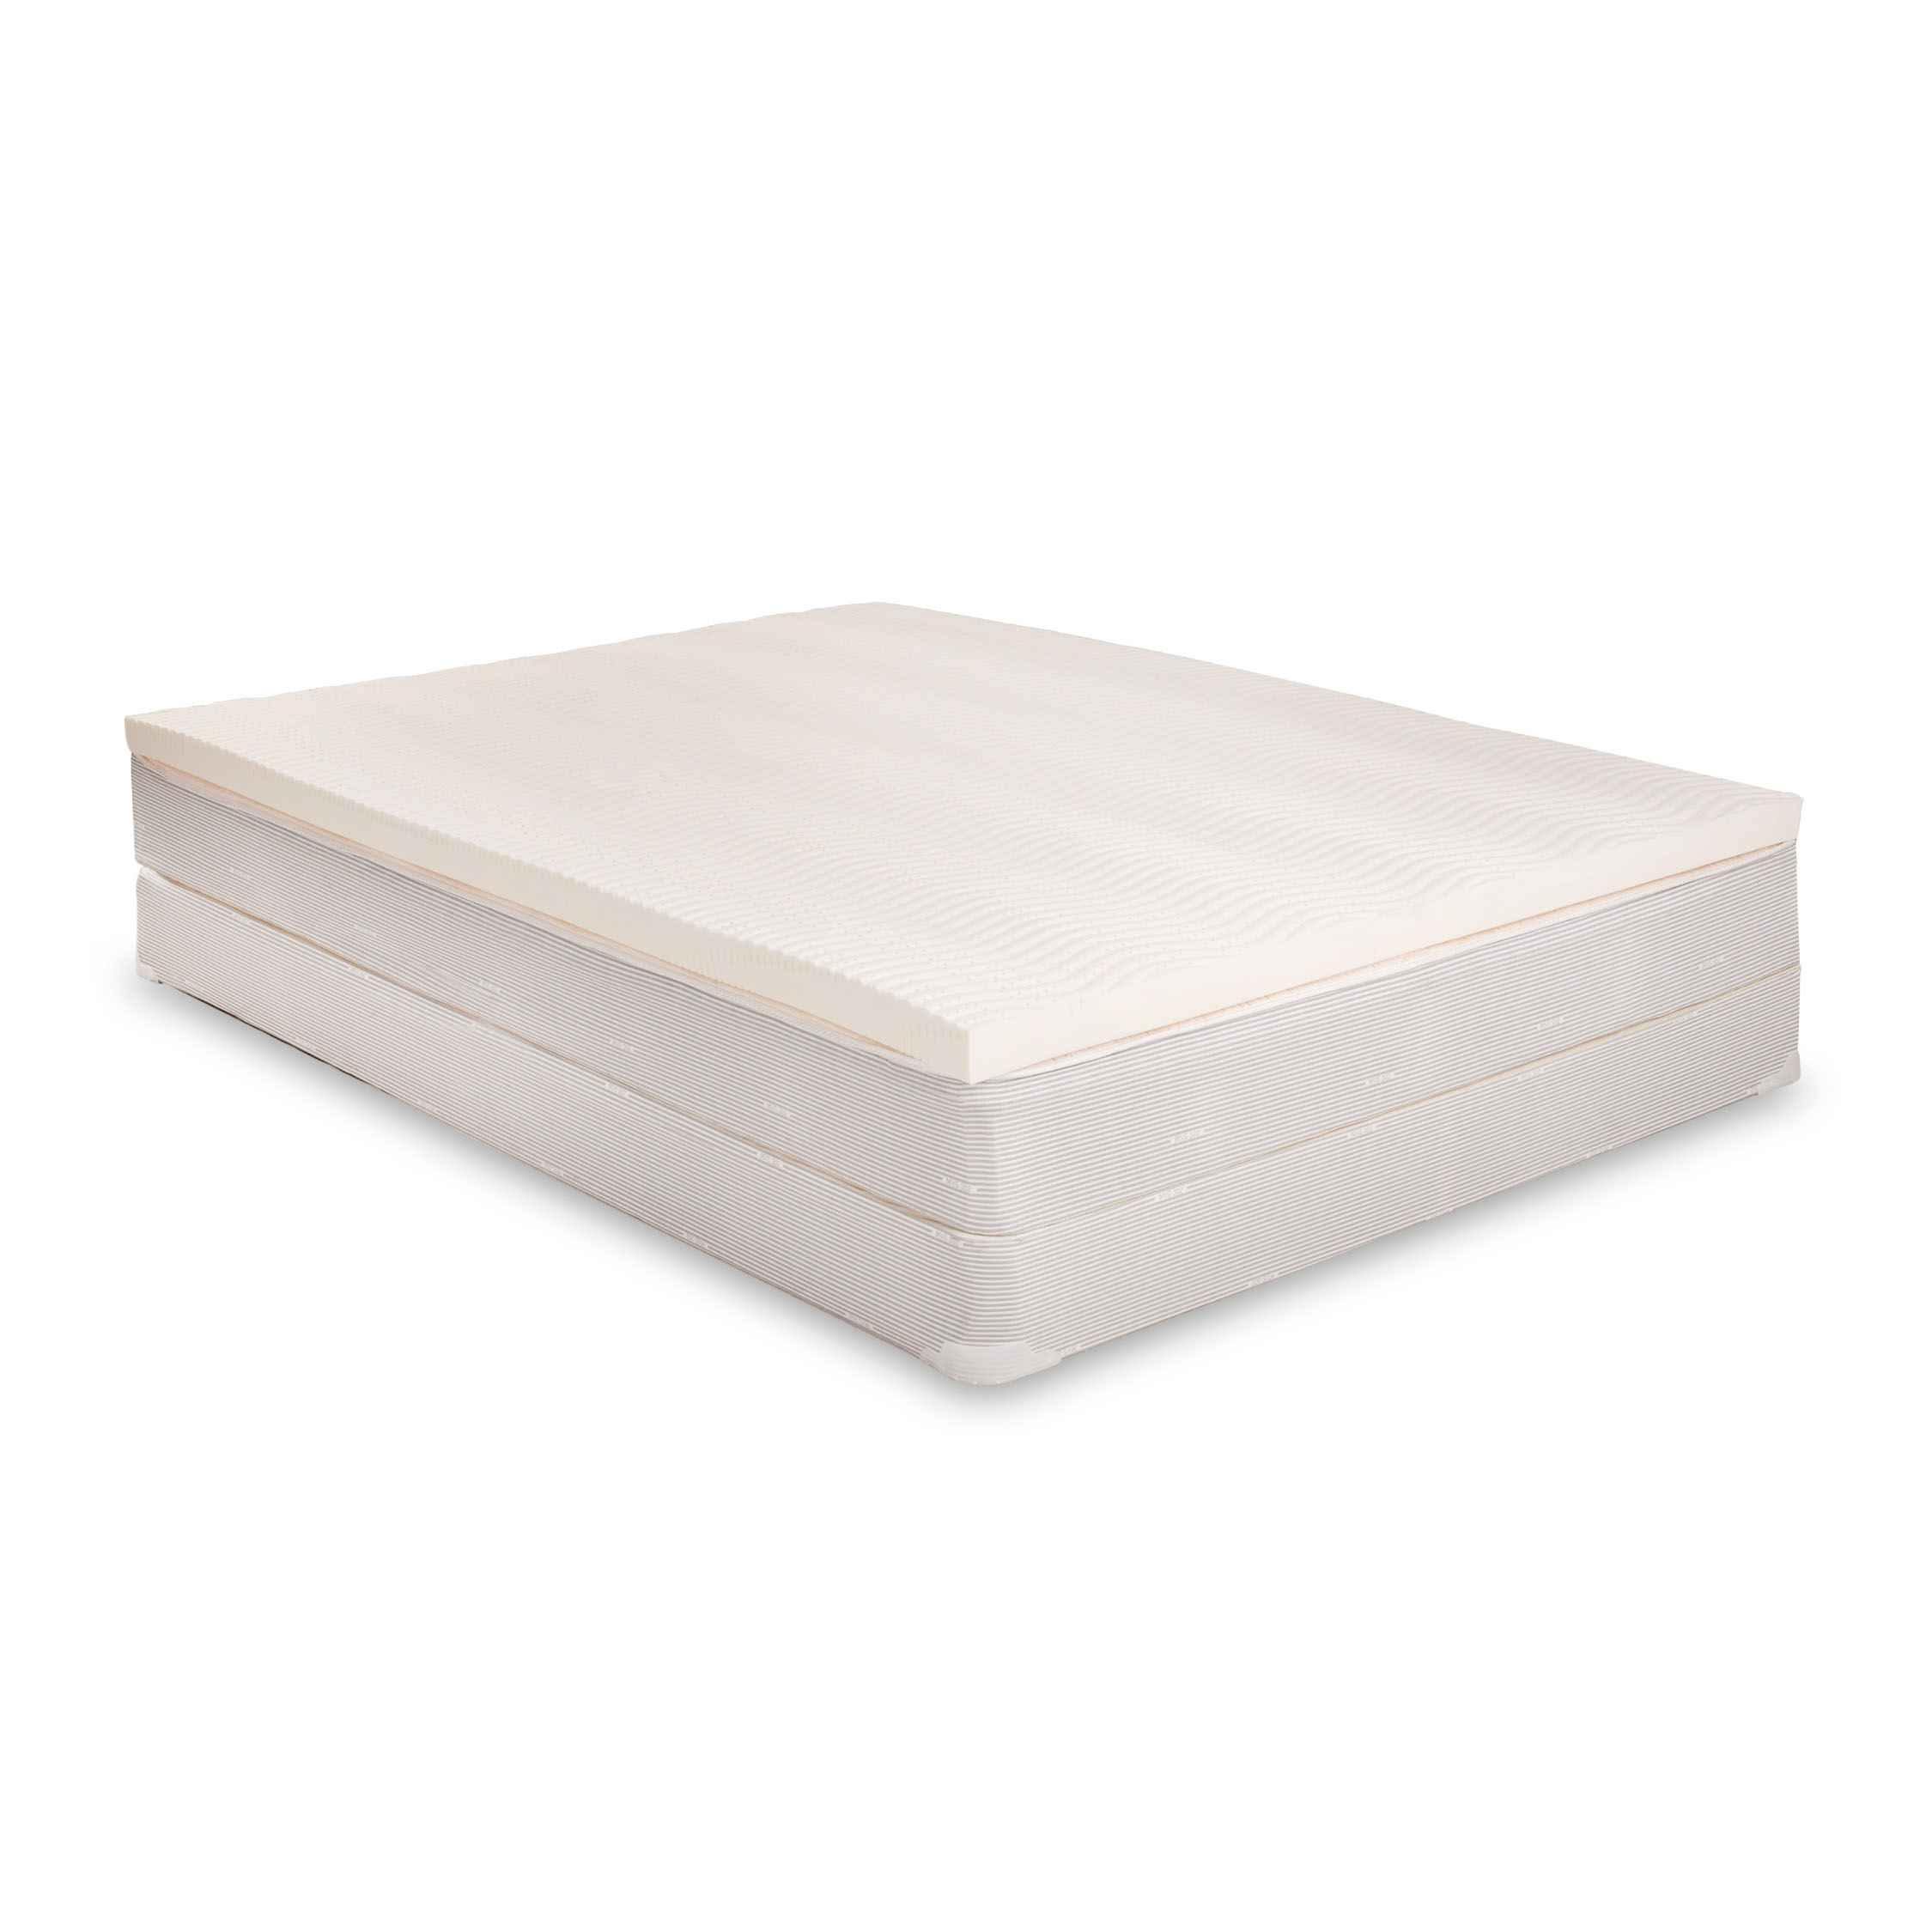 eLuxurySupply - 100% Latex Mattress Topper - No Fillers - Reversible with 2 Firmnesses - Walmart.com